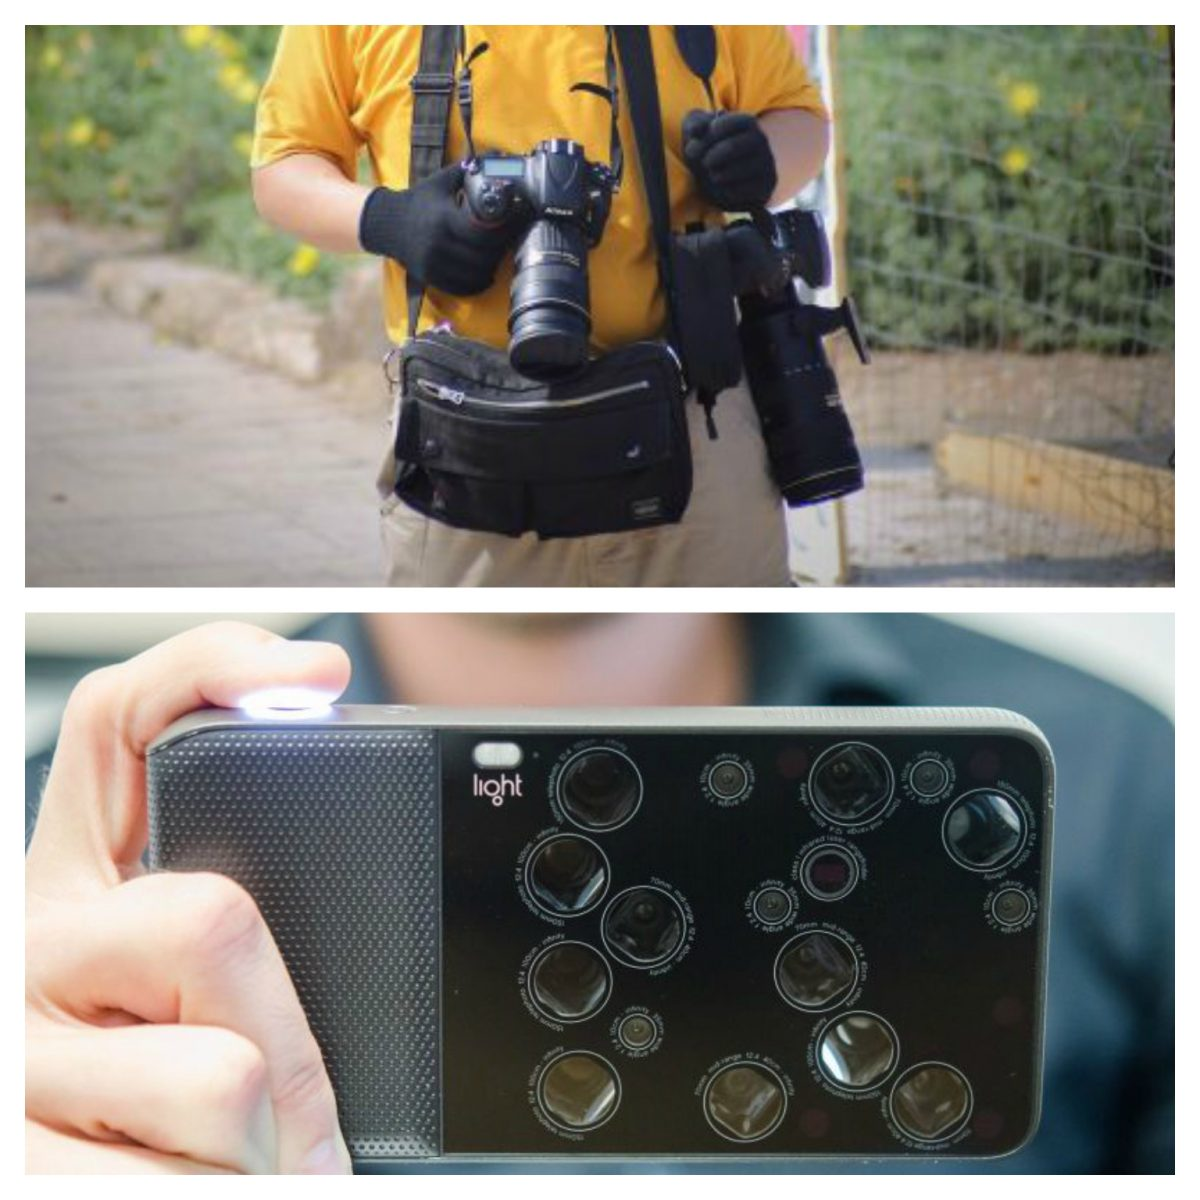 What is the multiple lens camera?